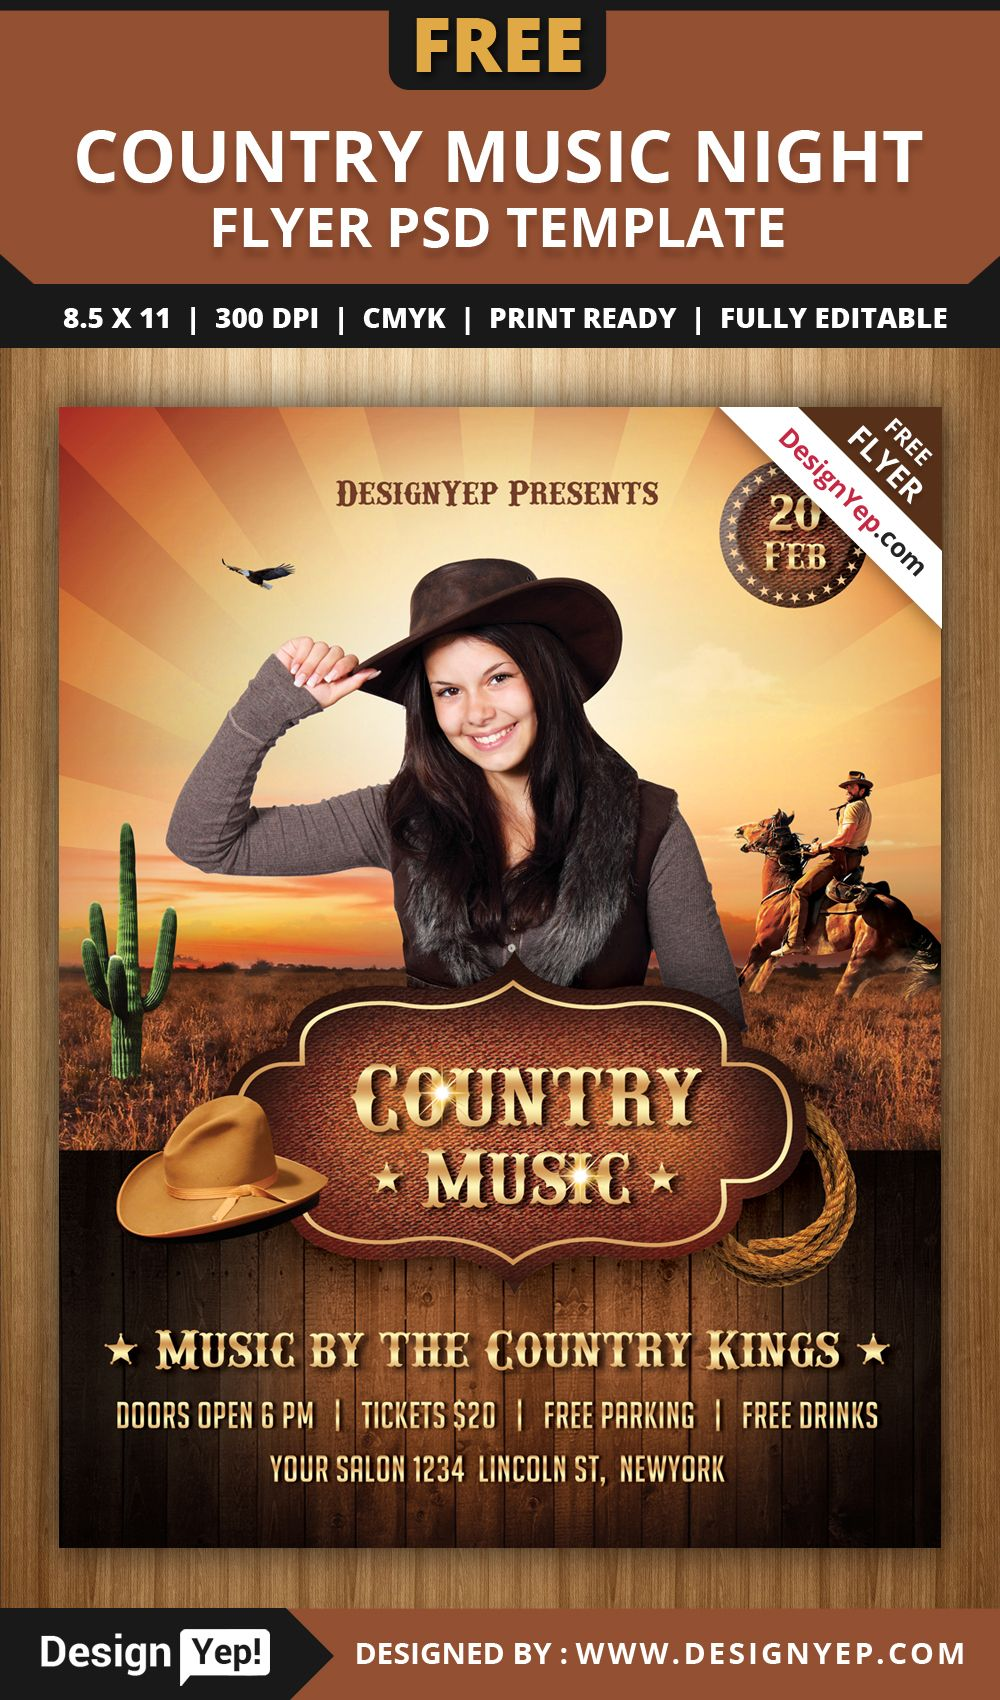 Free-Country-Music-Night-Flyer-PSD-Template-1515-Designyep | Free ...